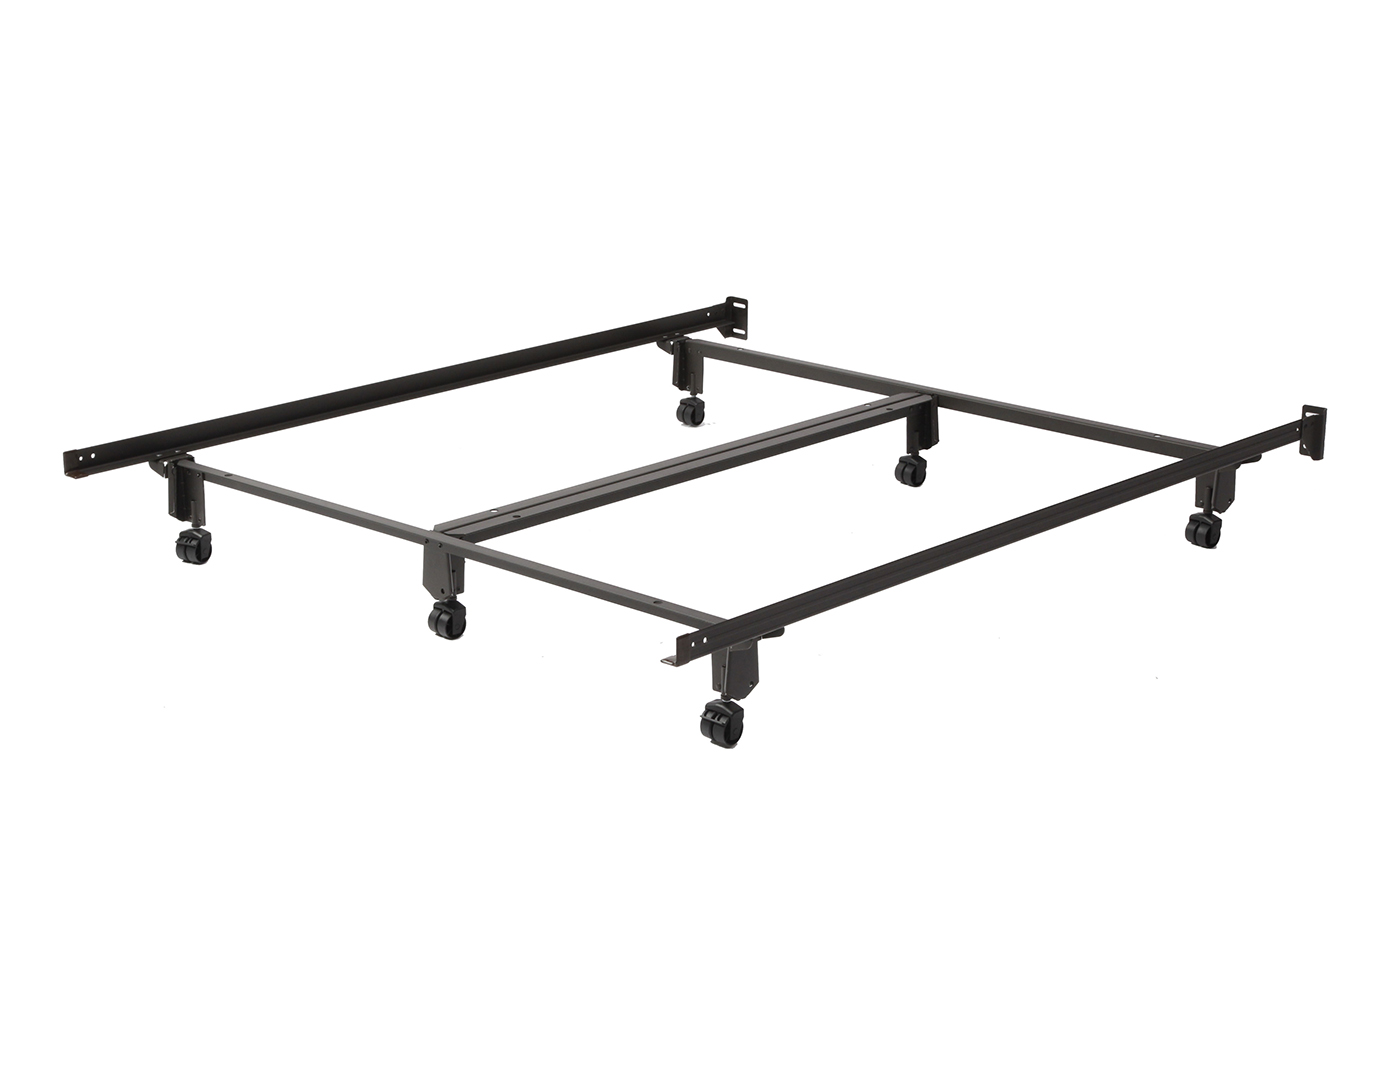 Craftlock Premium King Bed Frame